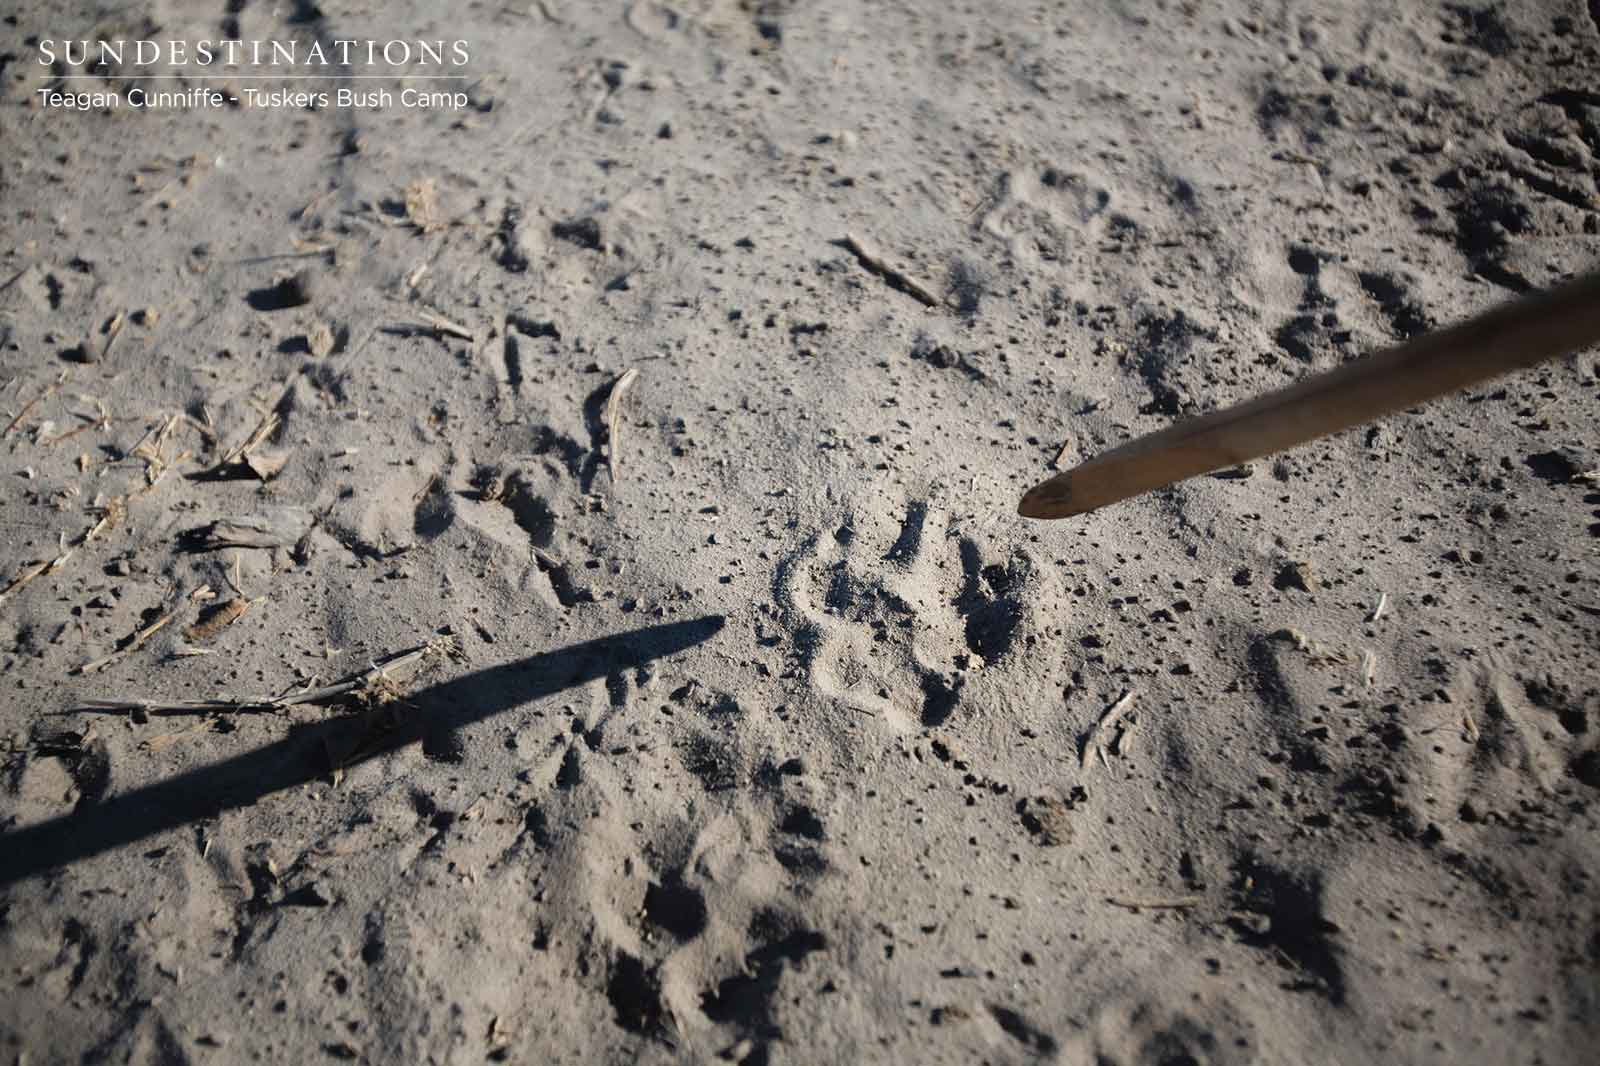 Tracking Wildlife at Tuskers Bush Camp